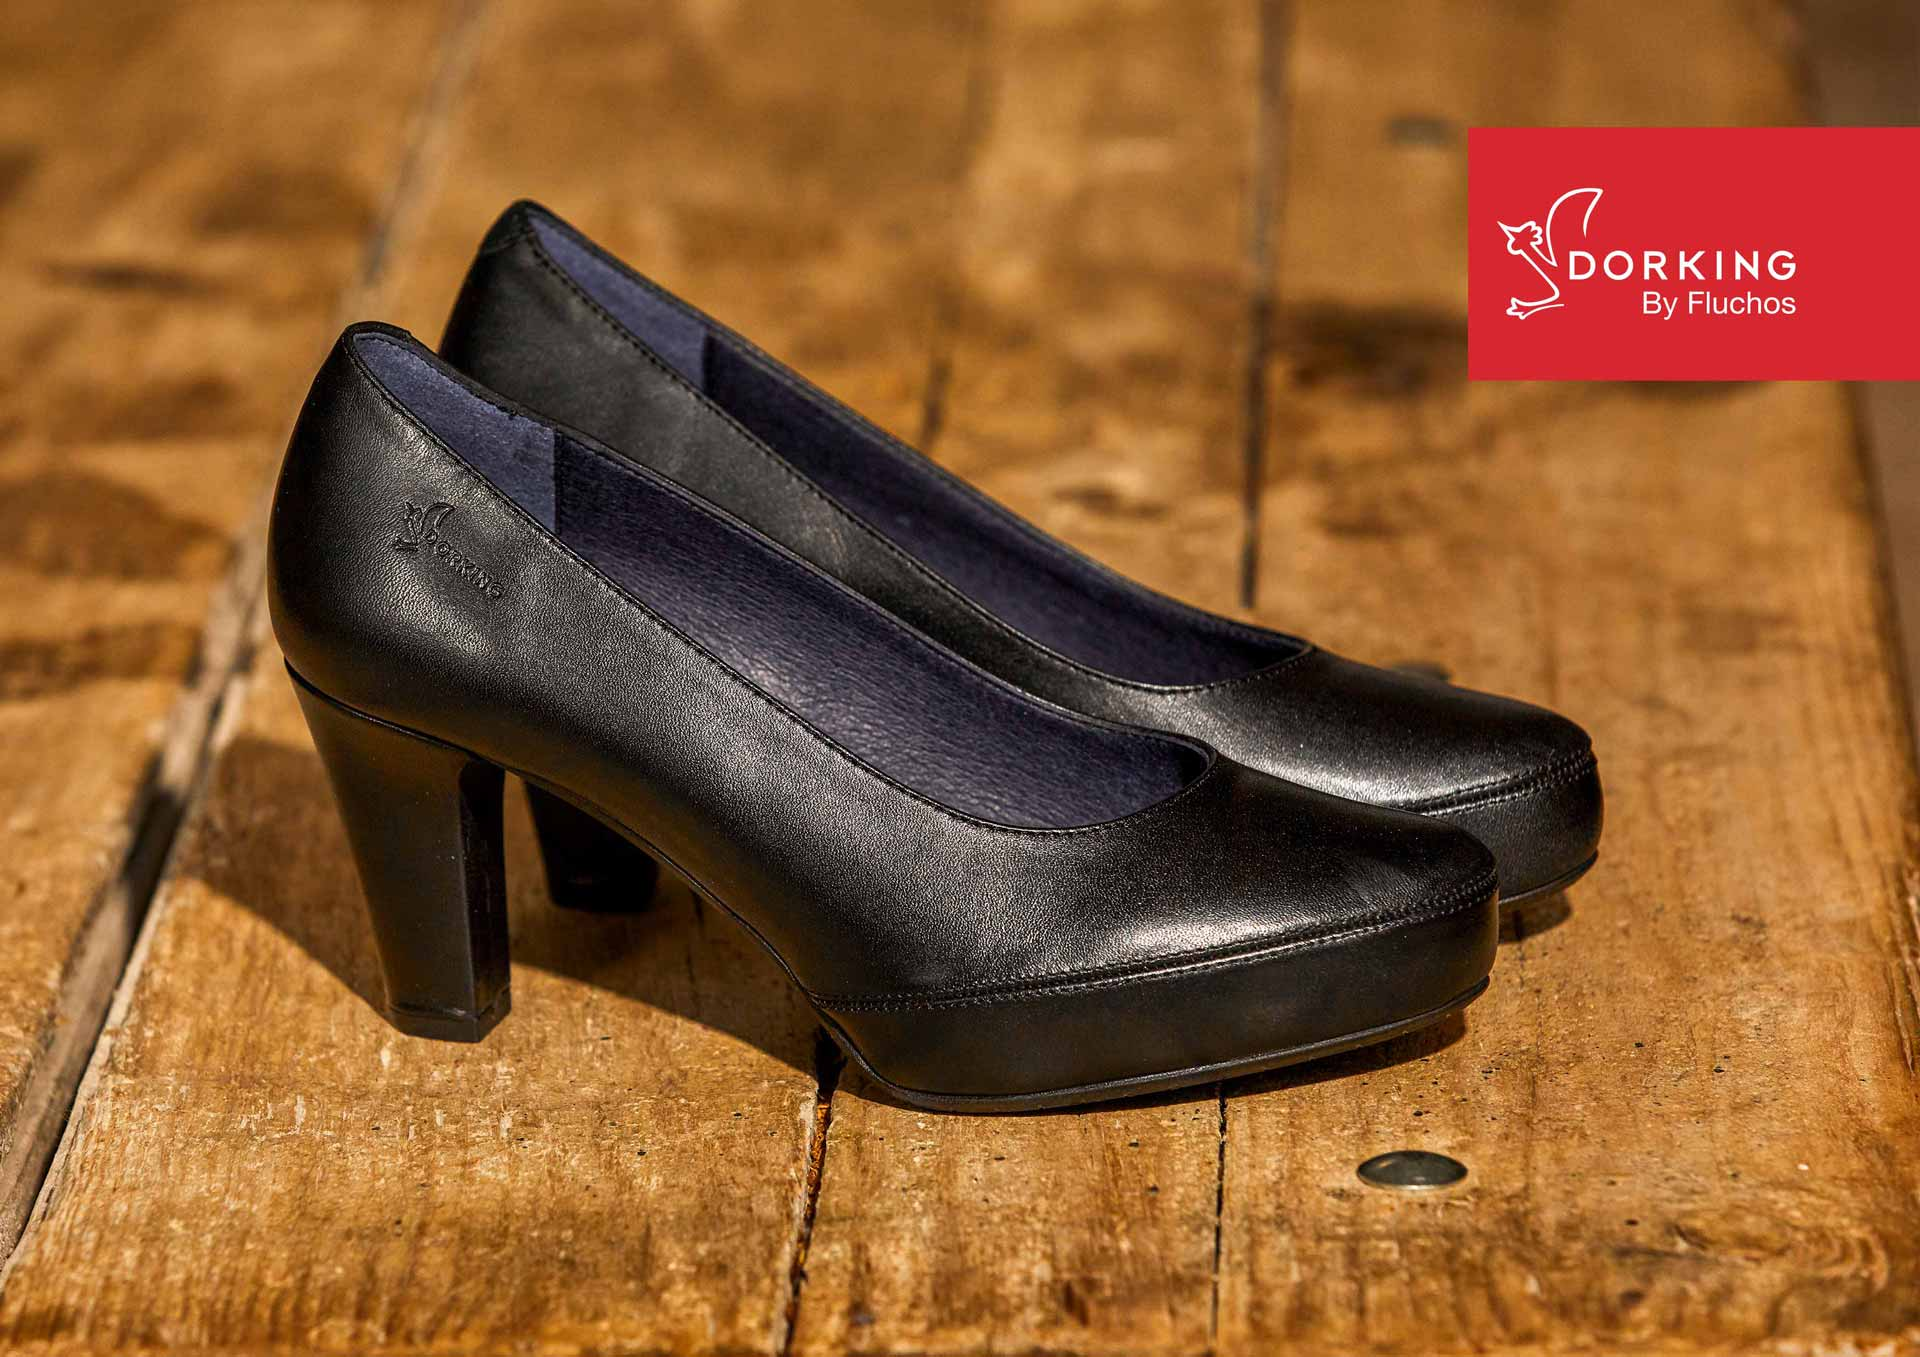 Fluchos shoes for women